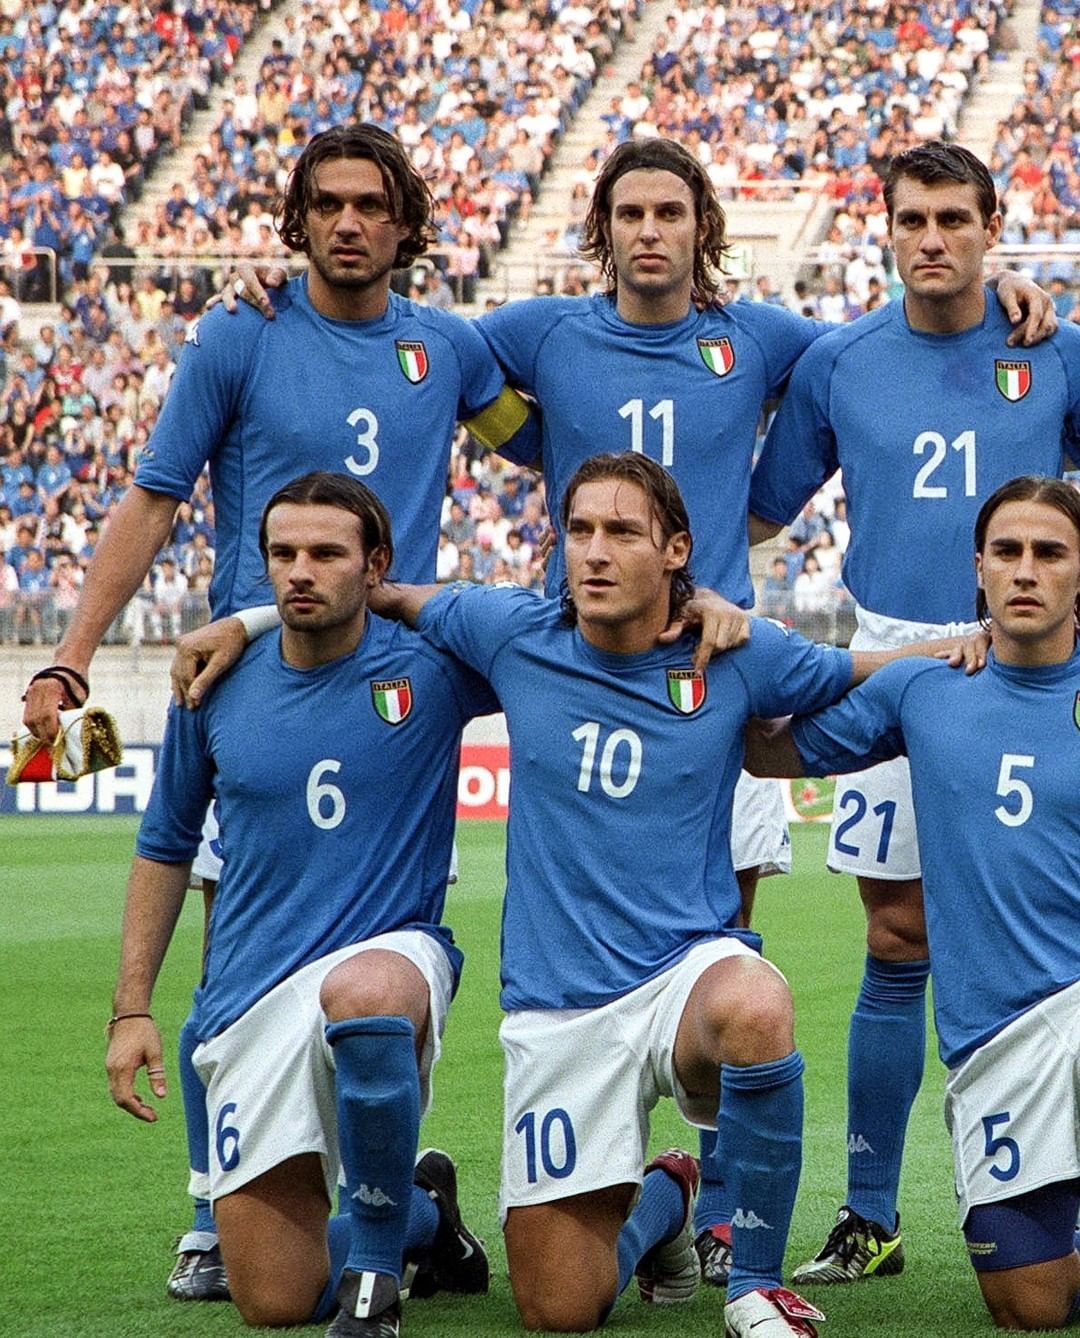 Favourite  star from this team?...